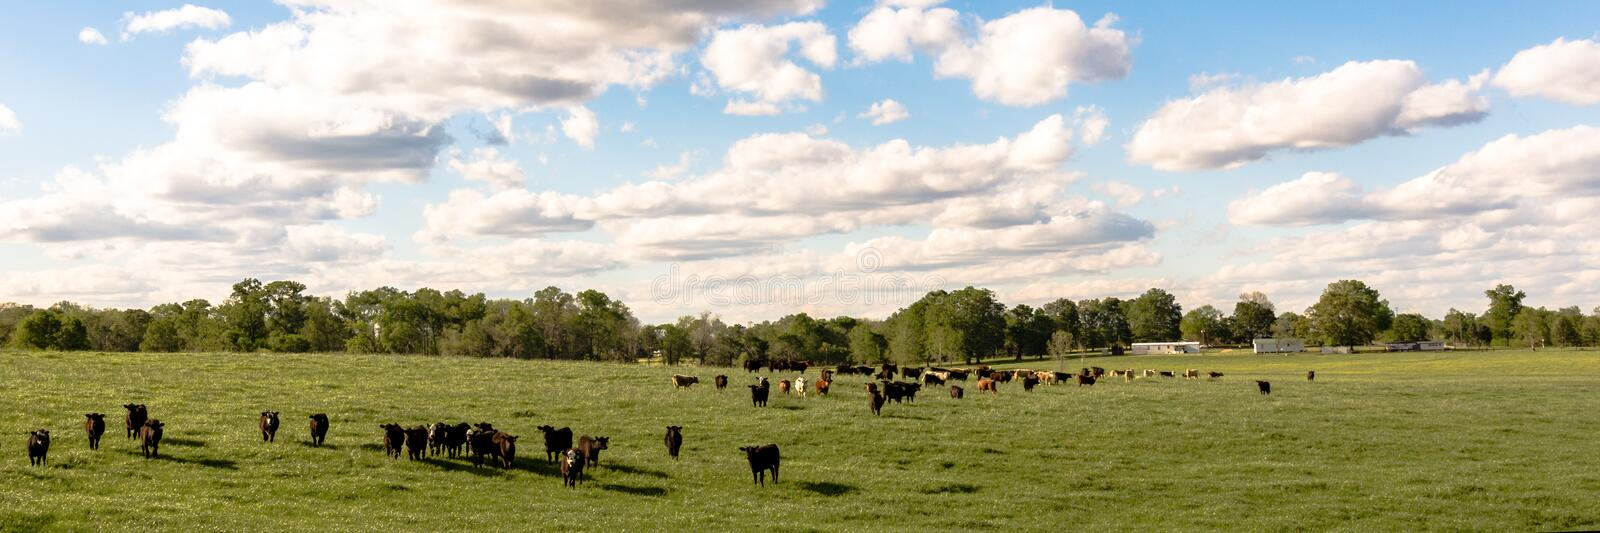 Country panorama of cattle in lush pasture. Country panorama of cattle in a lush green pasture with fluffy clouds and blue sky stock photography